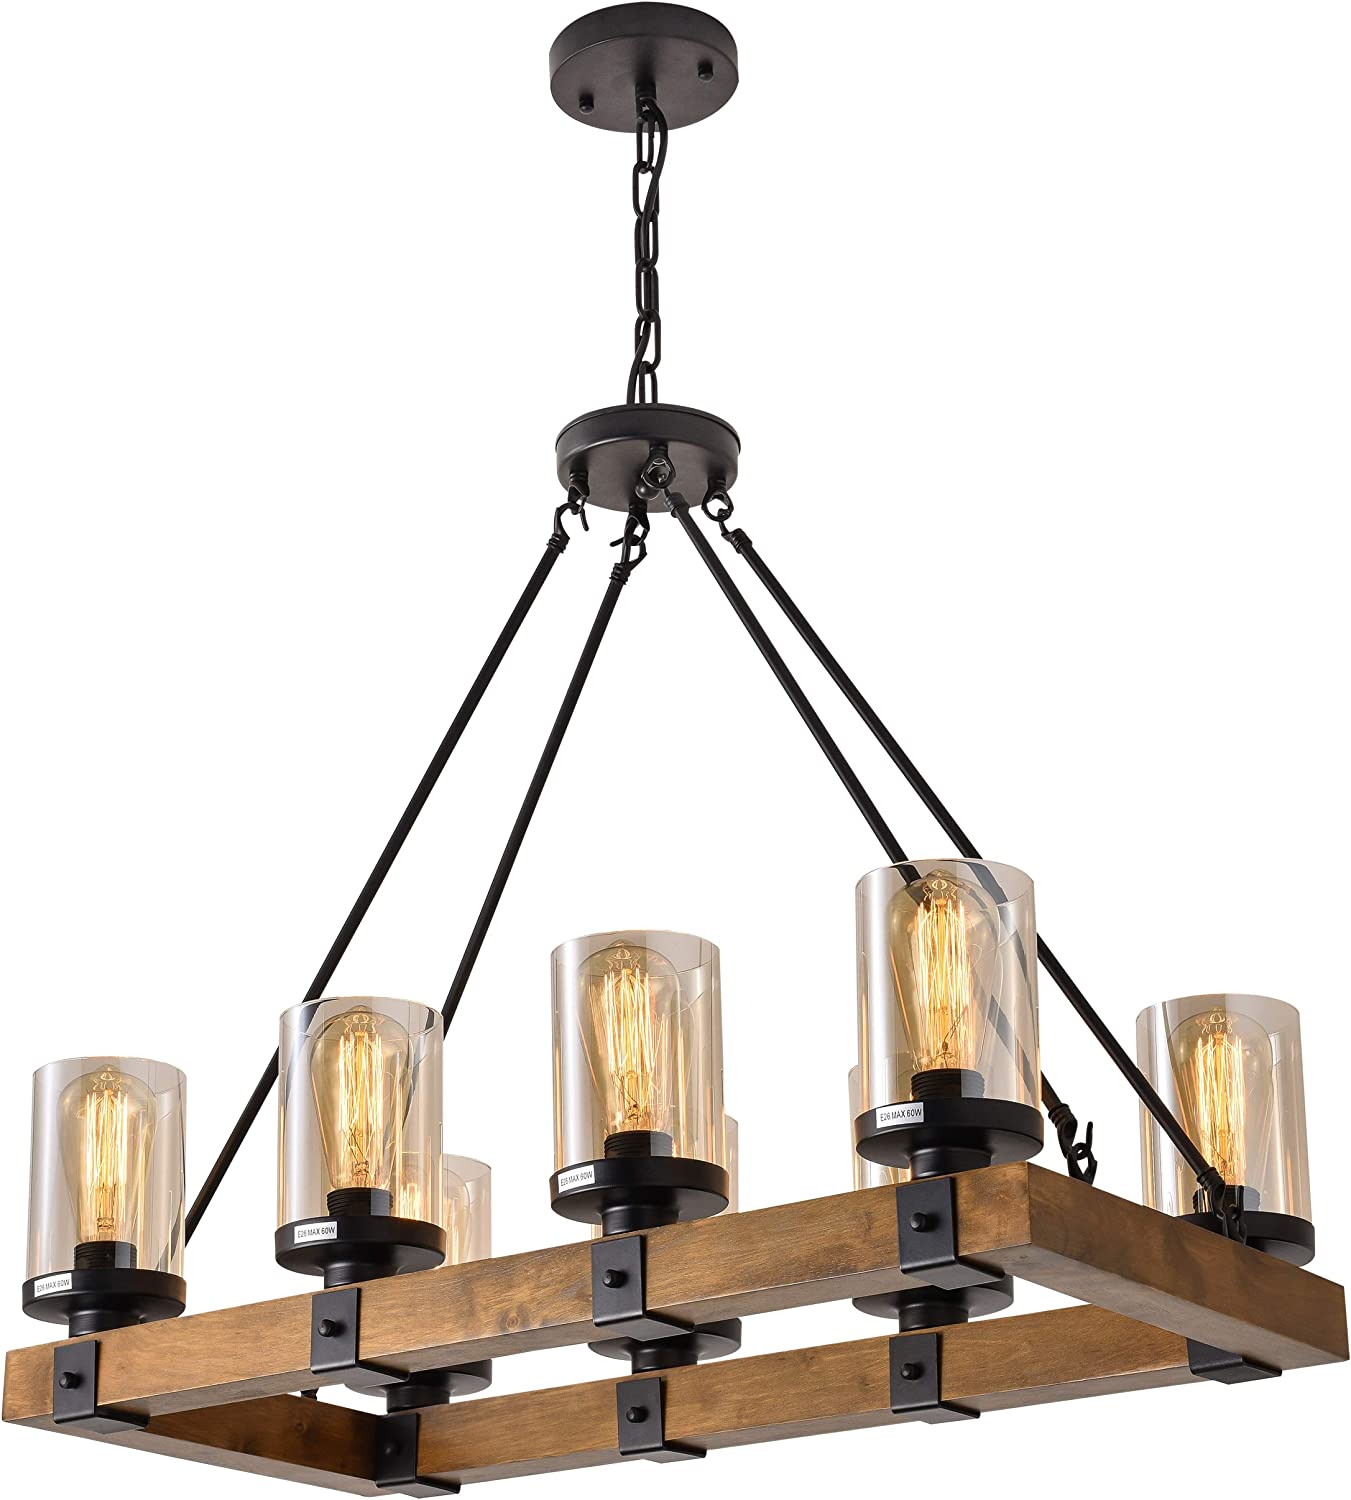 8-Light Farmhouse Wood Kitchen Island, Wood Chandeliers, Candle Pendant Light, Glass Lodge and Tavern Pendant Lighting 480W Max Bulb Not Included